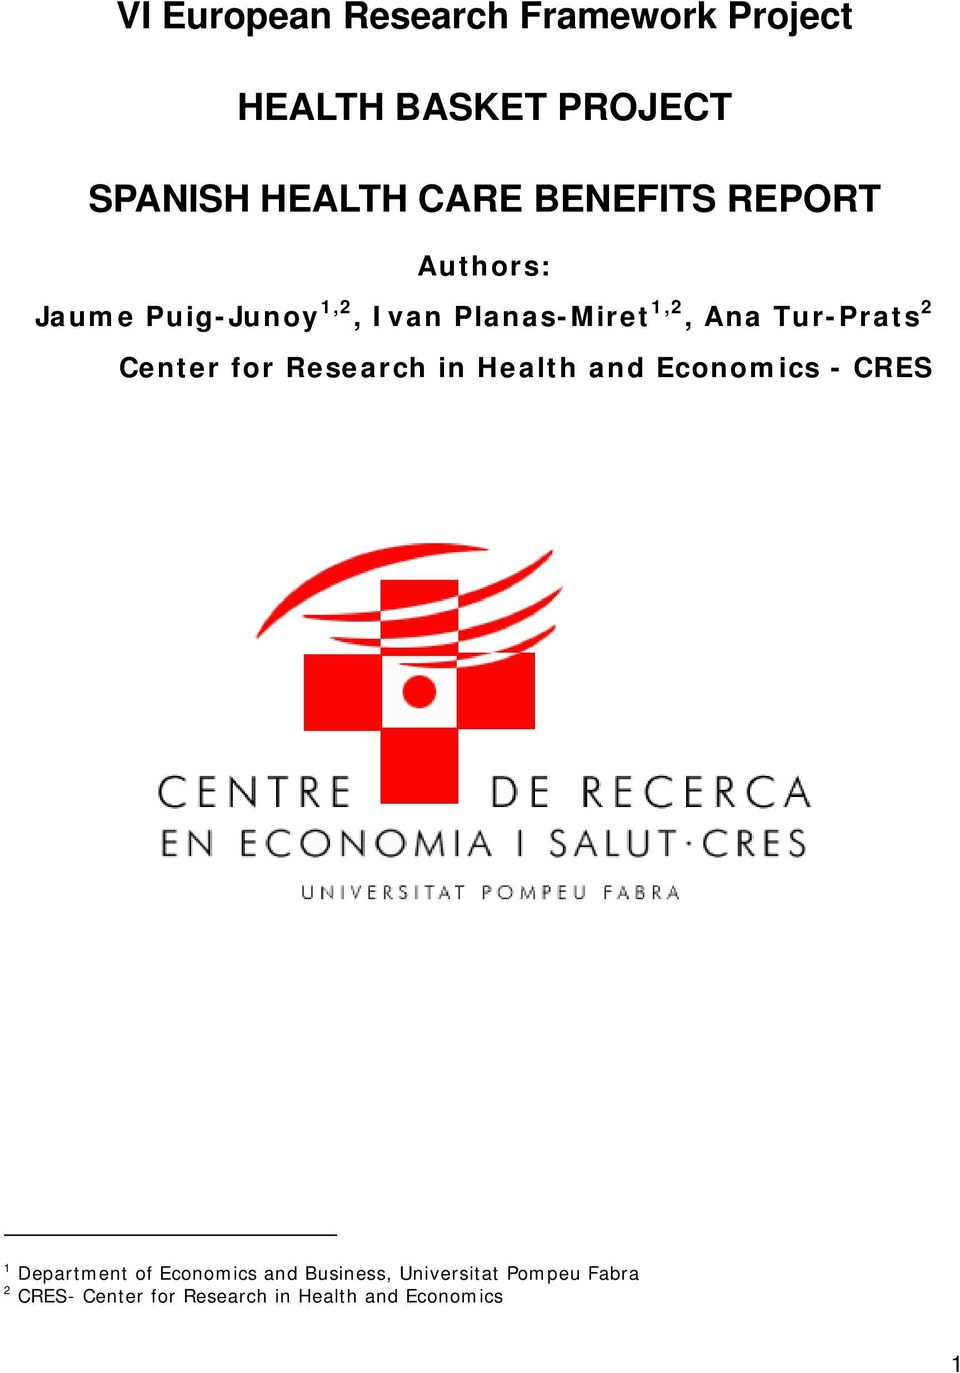 2 Center for Research in Health and Economics - CRES 1 Department of Economics and